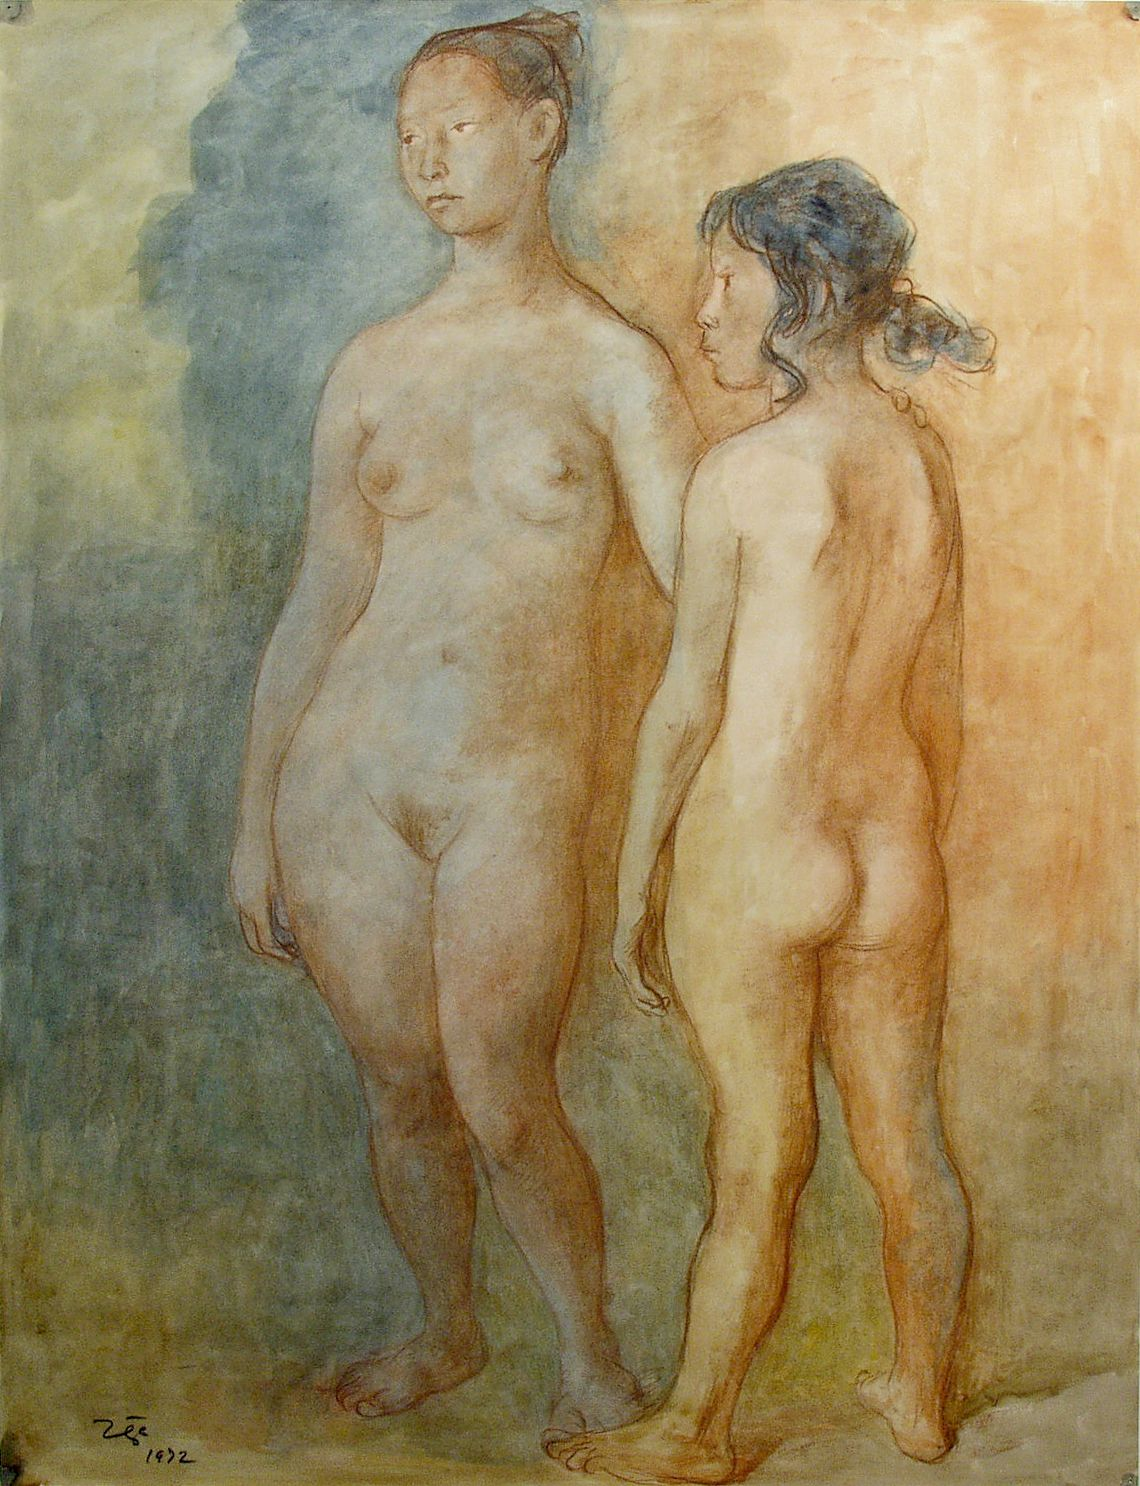 Francisco Zuñiga, Two Women, 1972, pastel and watercolor on paper, 25 3/4 x 19 3/4 inches